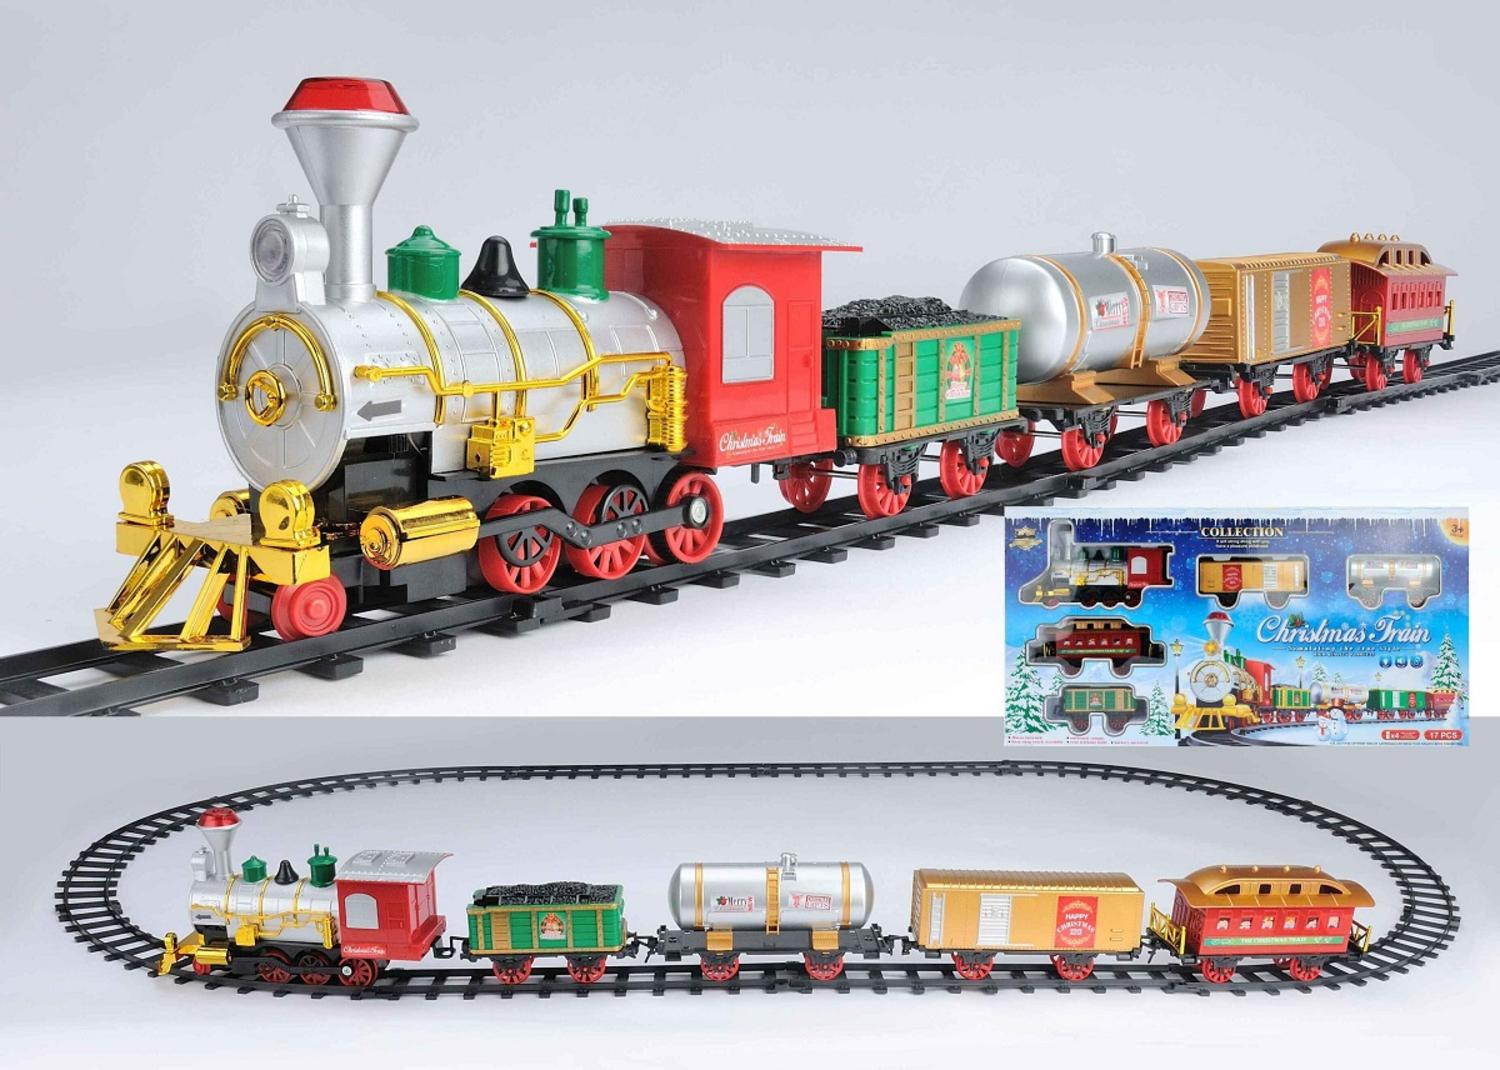 17-Piece Battery Operated Lighted & Animated Christmas Express Train Set with Sound by Northlight